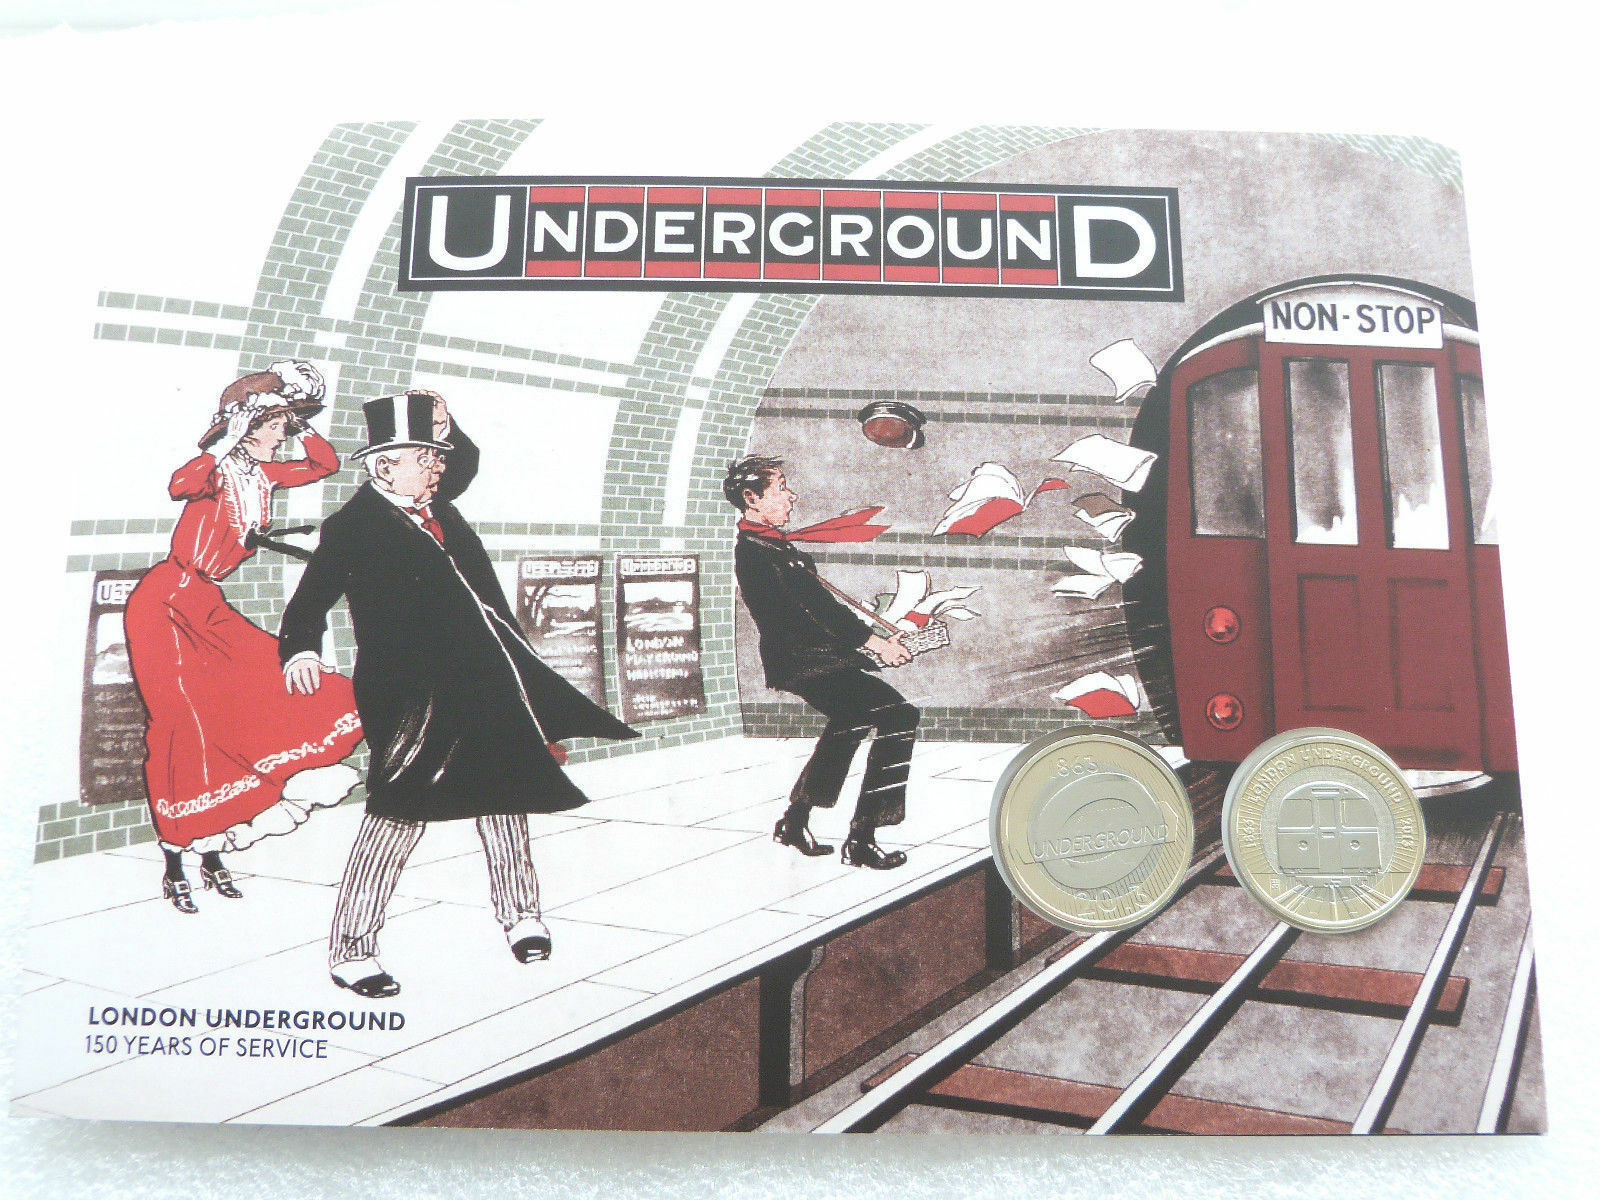 s l1600 - The Underground's £2 coin